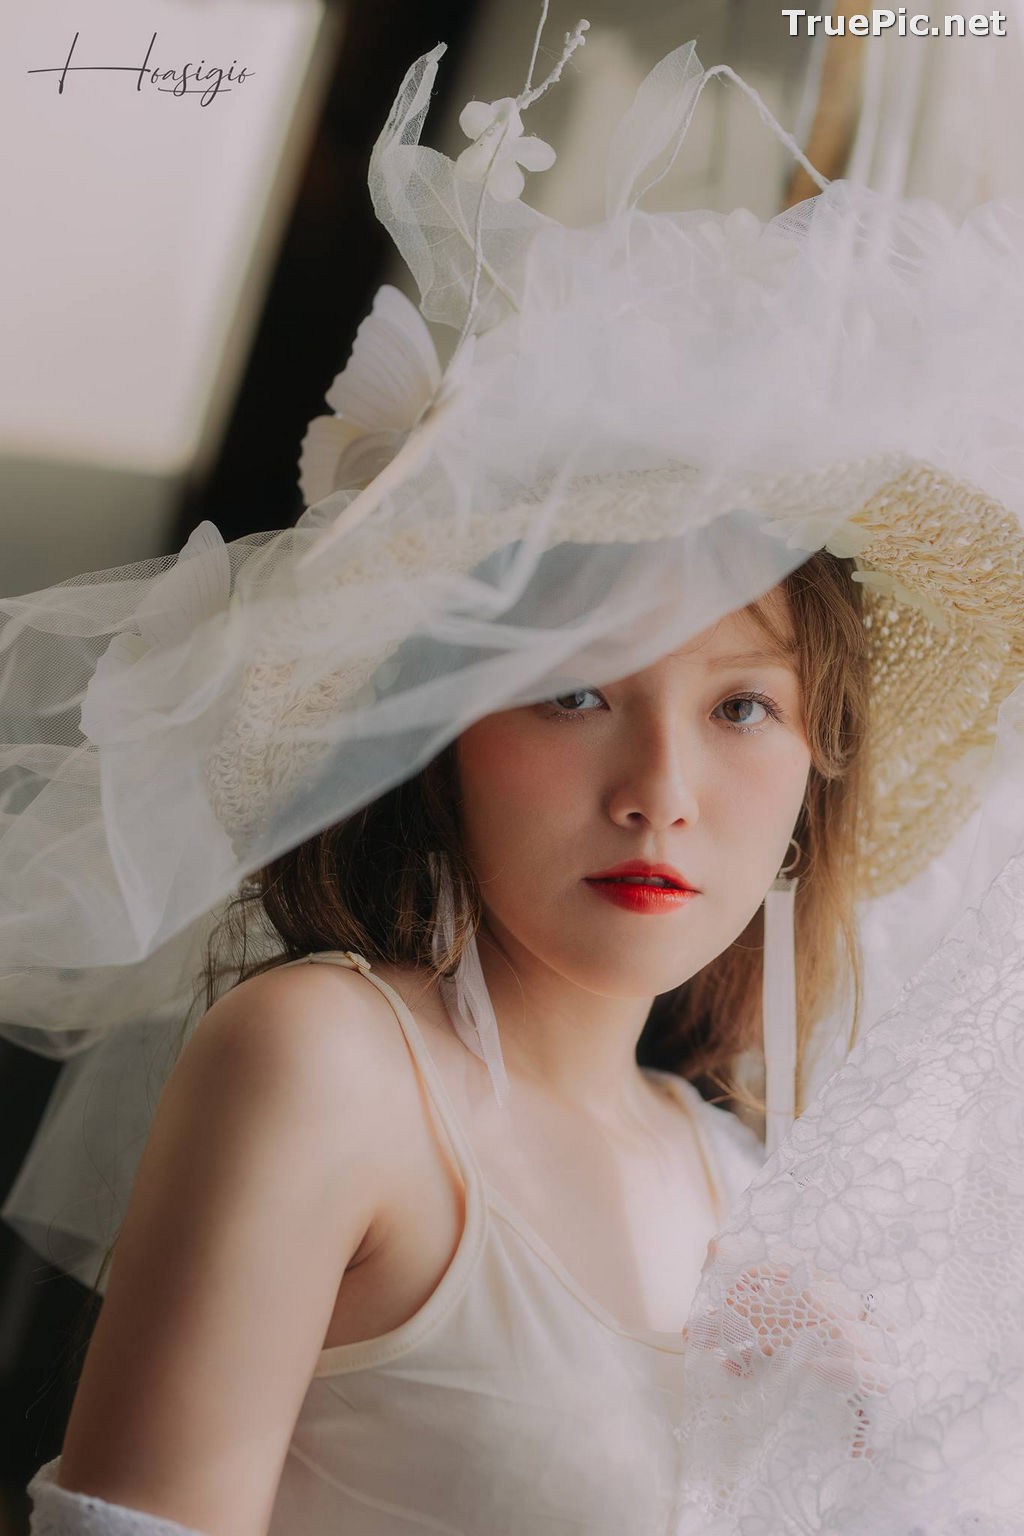 Image Vietnamese Model - Tuyet Son - White Skin and Red Lips - TruePic.net - Picture-10